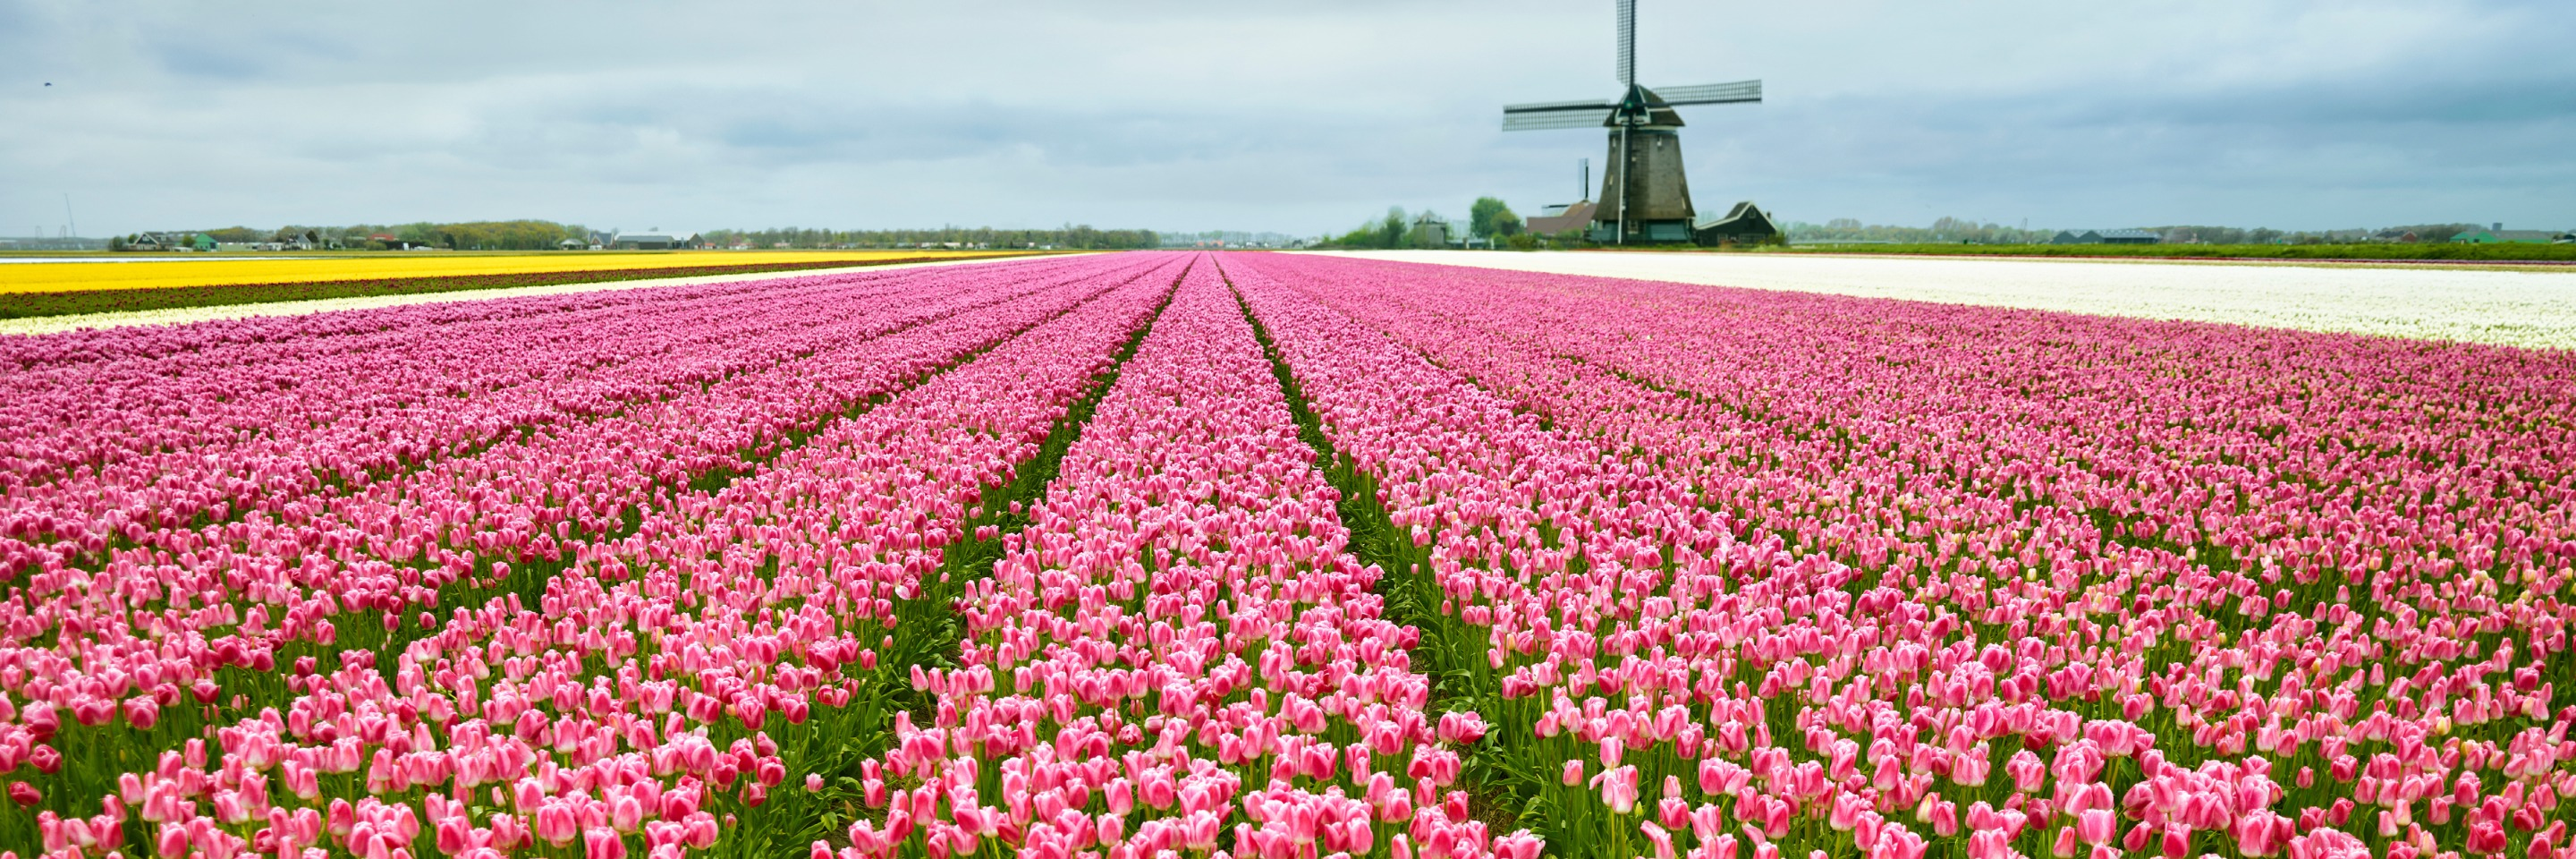 Tulip Time Cruise with 1 Night in Amsterdam & 3 Nights in Paris for Beer Enthusiasts